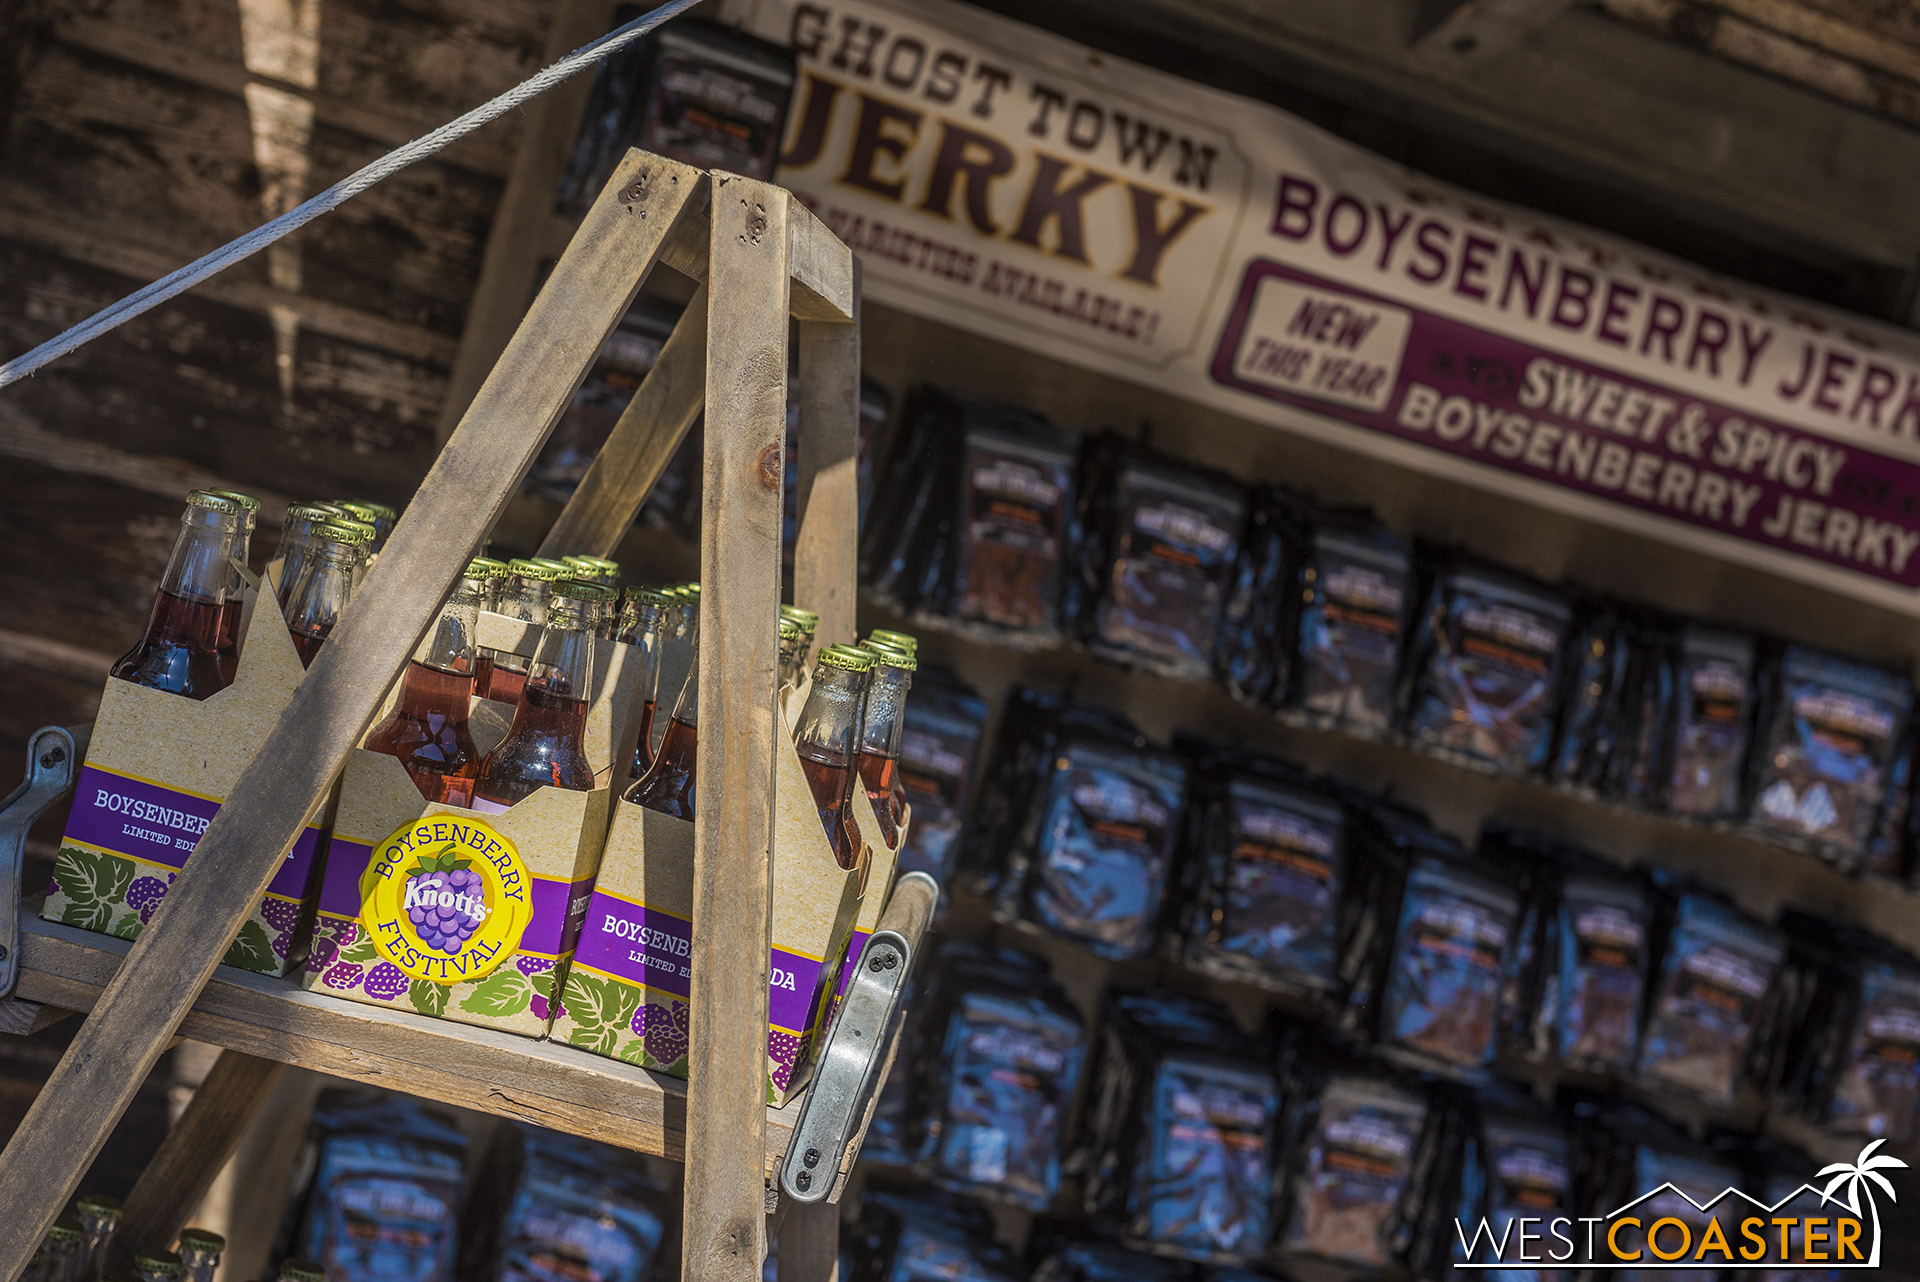 There are also a ton of commercial boysenberry products, like jerky and soda.